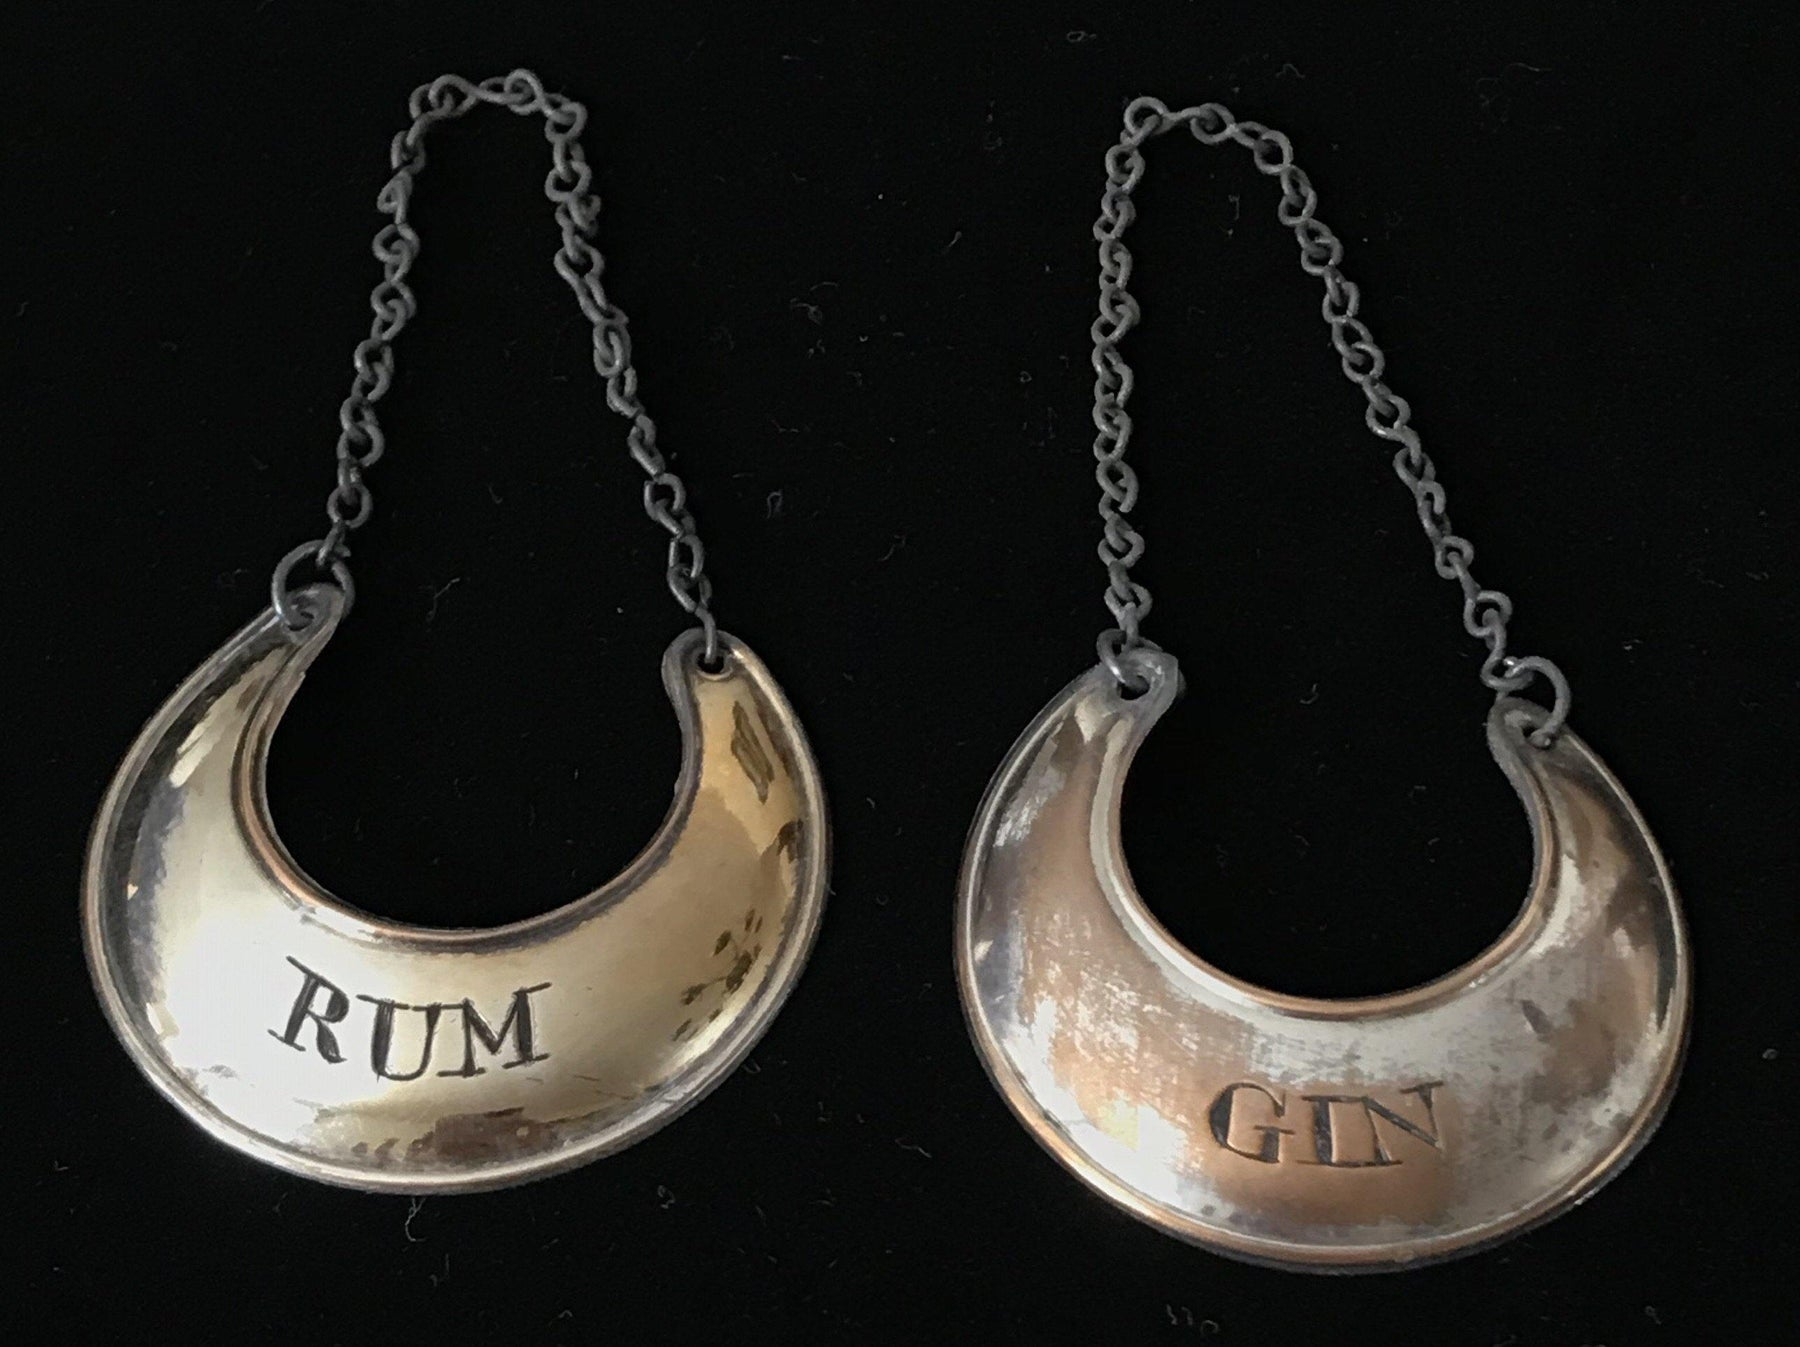 Pair of British 1780 Silver Sheffield Labels: Rum and Gin for sale